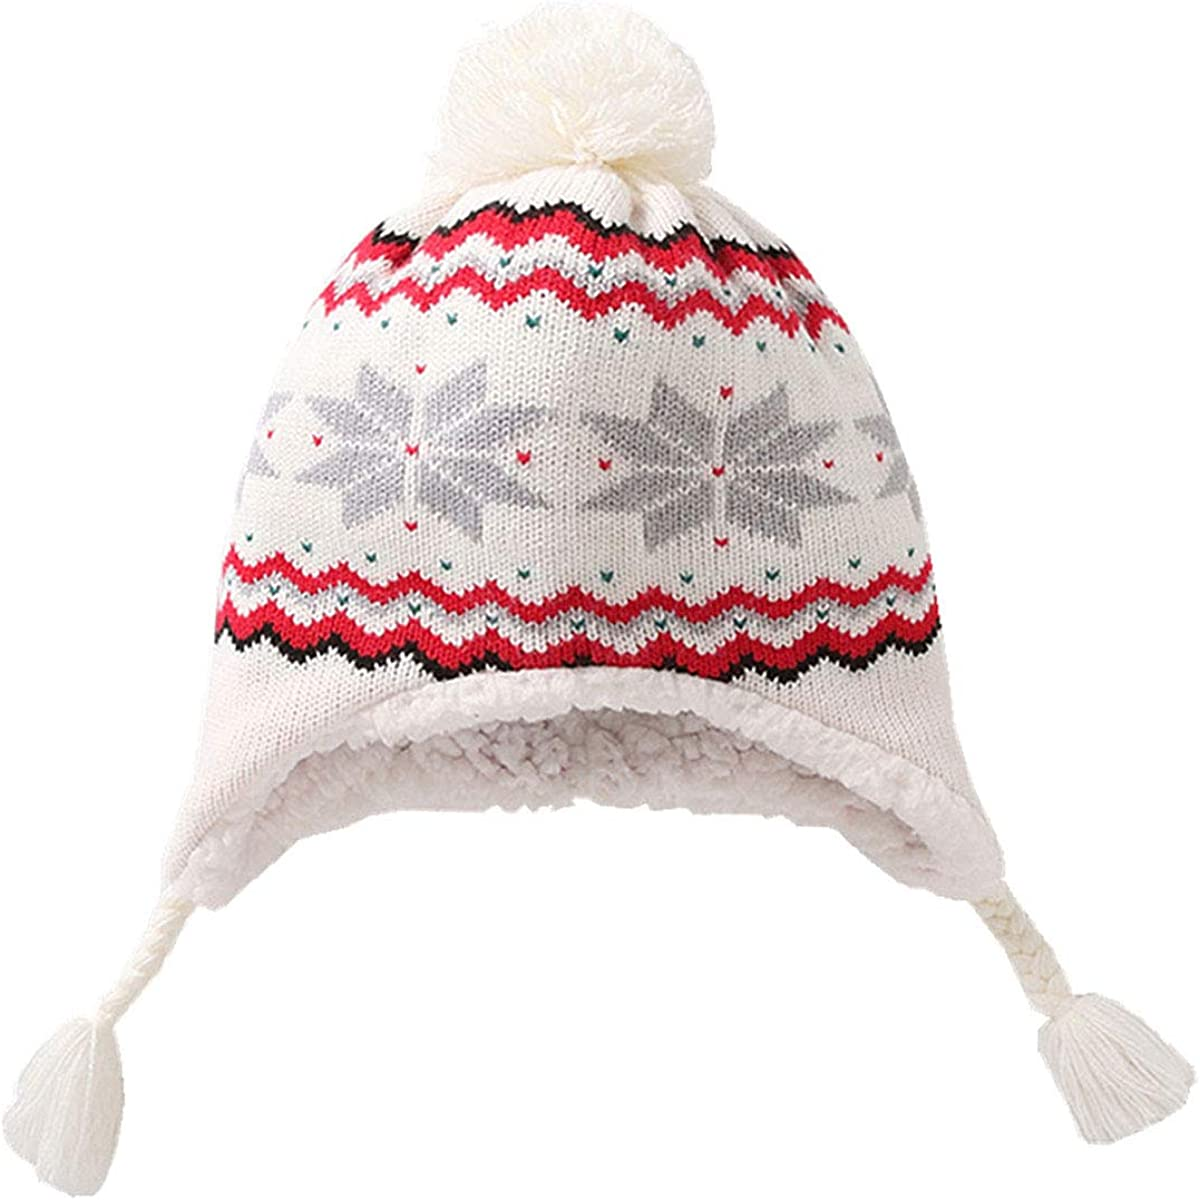 FUOITA Baby Winter Hat Girl Boy Beanie with Pompom Warm Knitted Caps